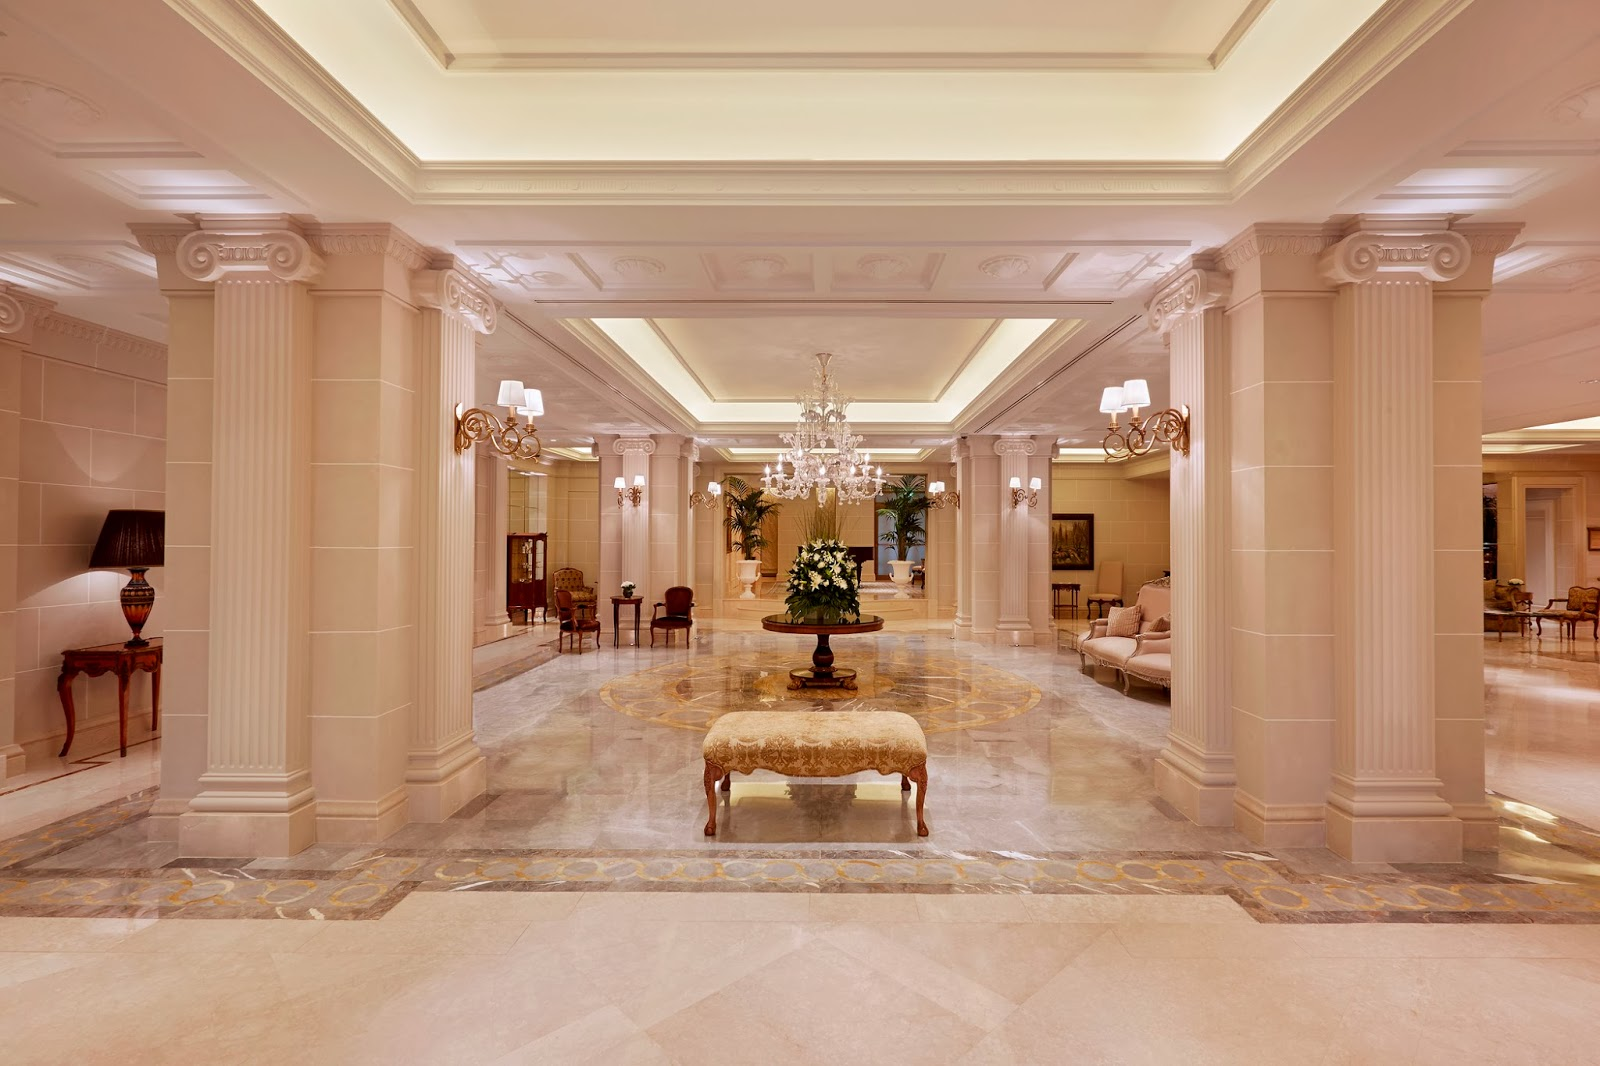 Passion for luxury luxurious king george athens for Luxury hotel accommodation